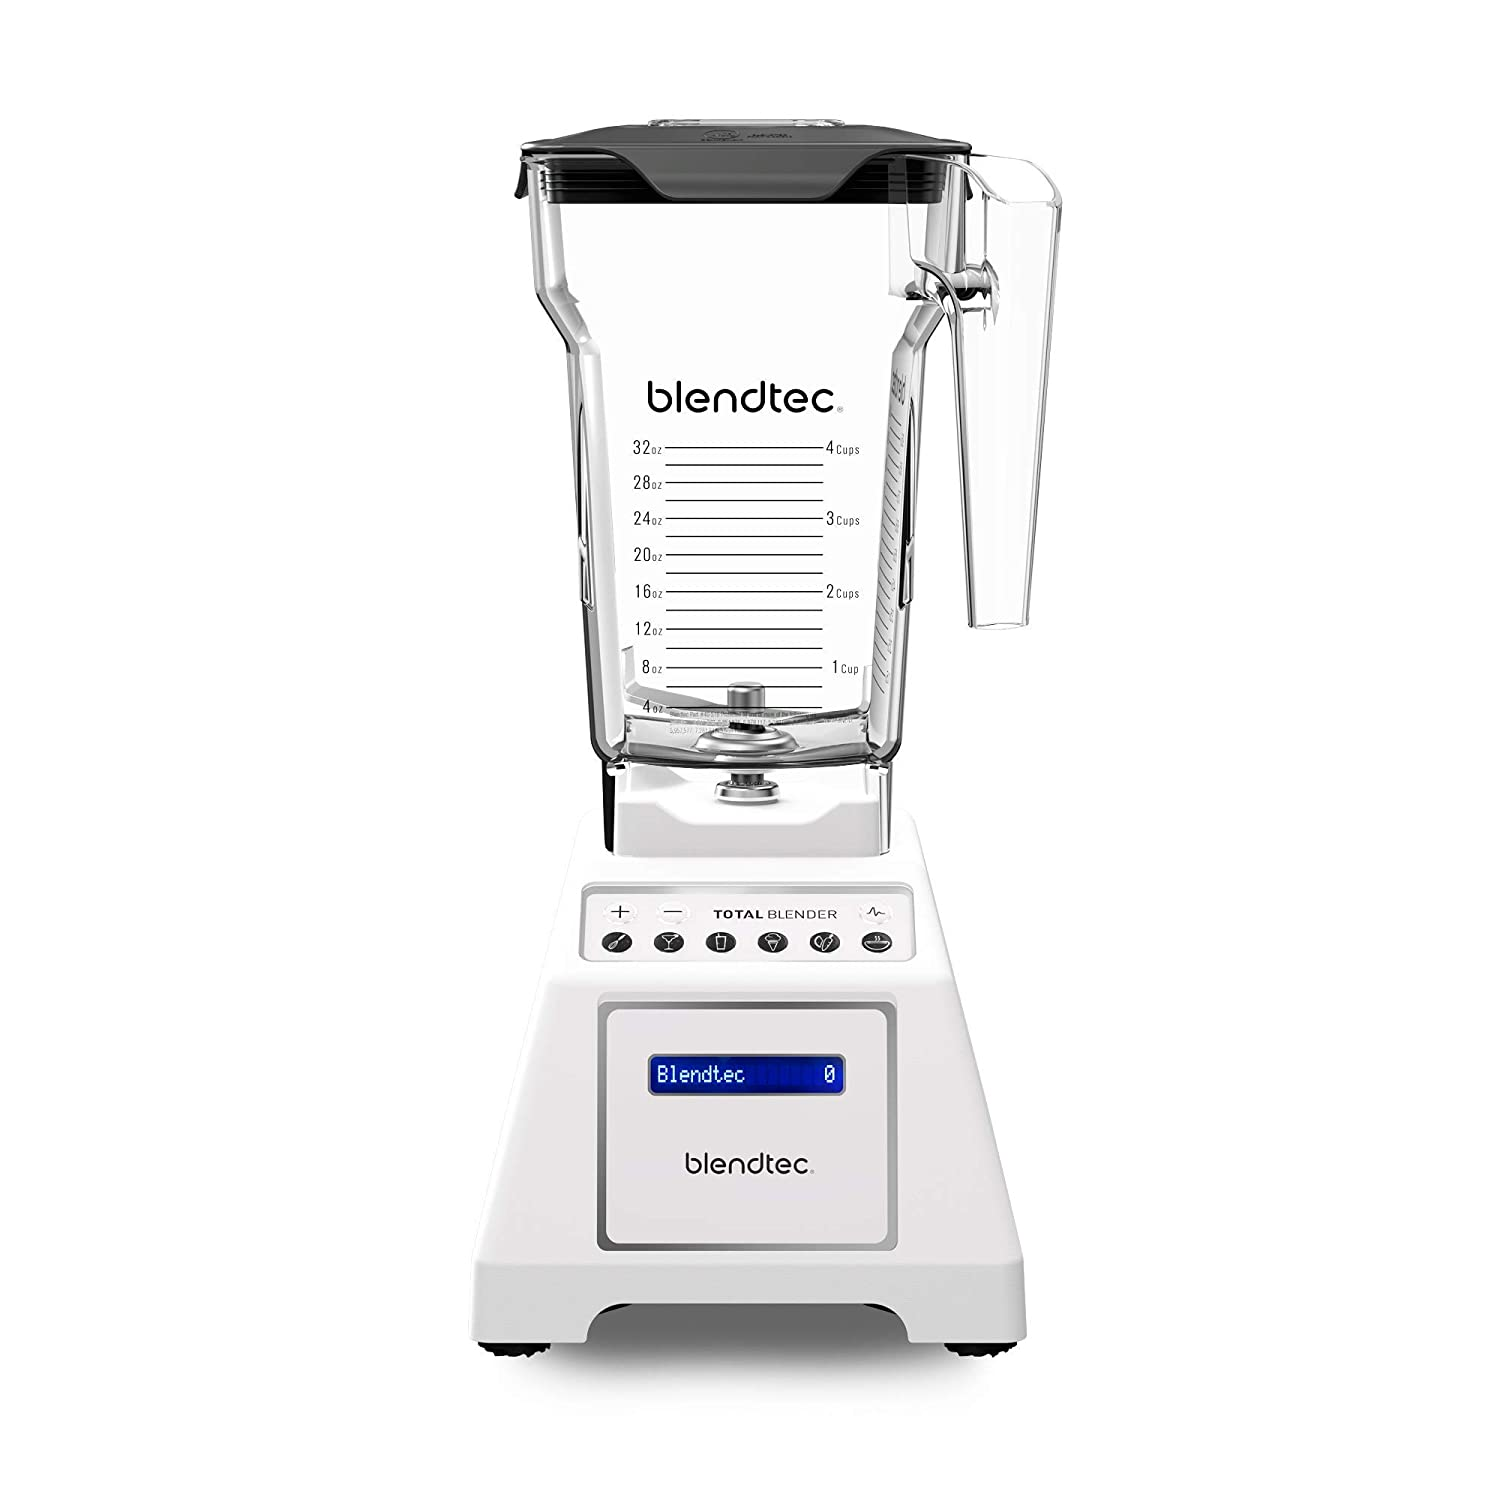 Blendtec Total Classic Original Blender - FourSide Jar (75 oz) - Professional-Grade Power - 6 Pre-programmed Cycles - 10-speeds - White